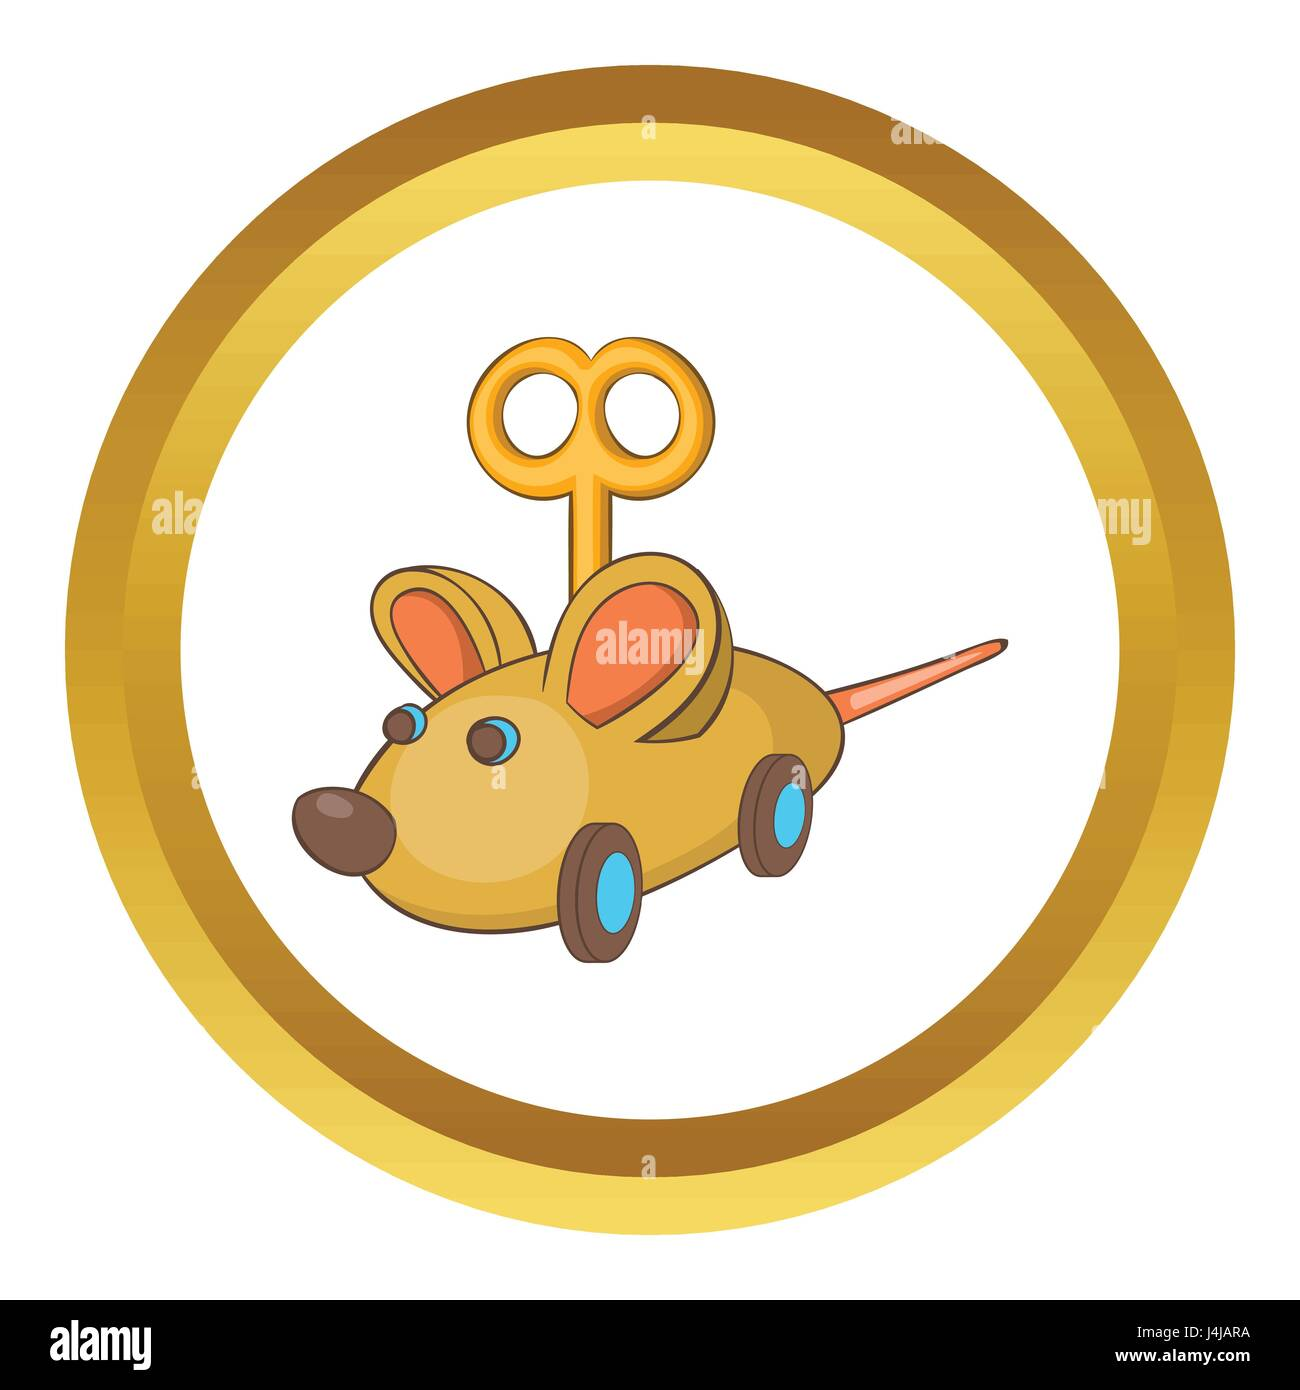 Clockwork mouse vector icon - Stock Image